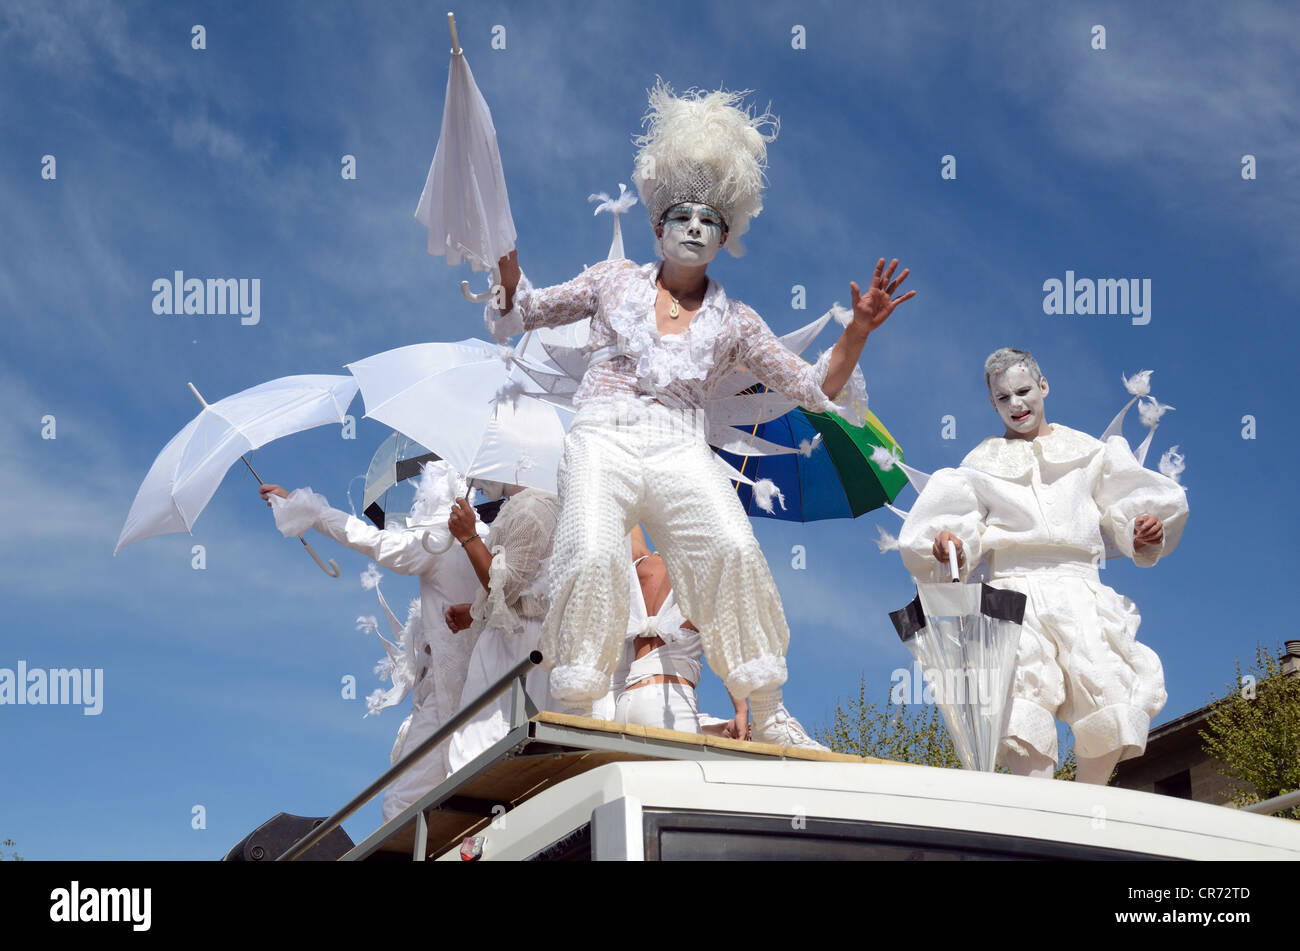 Street Theater or Theatre at the Spring Carnival Aix-en-Provence Provence France - Stock Image